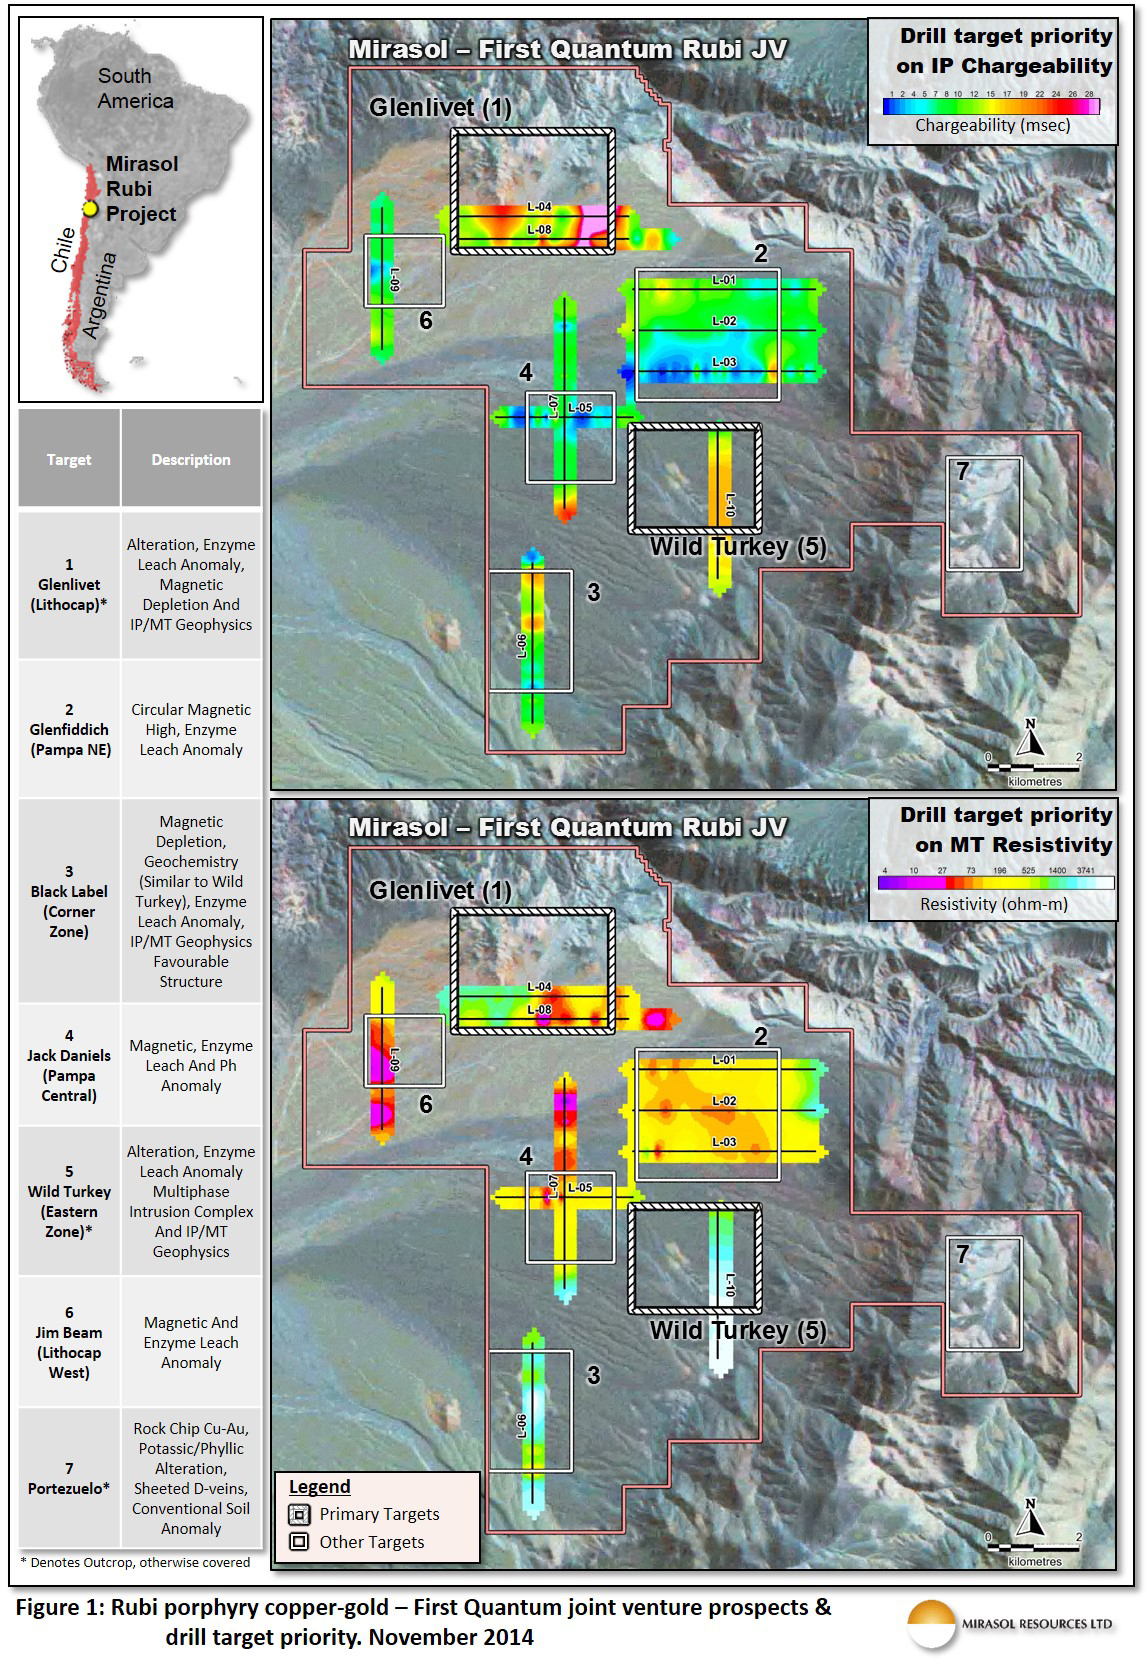 Figure 1: Rubi porphyry copper-gold - First Quantum Joint venture Prospects & drill target priority. November 2014